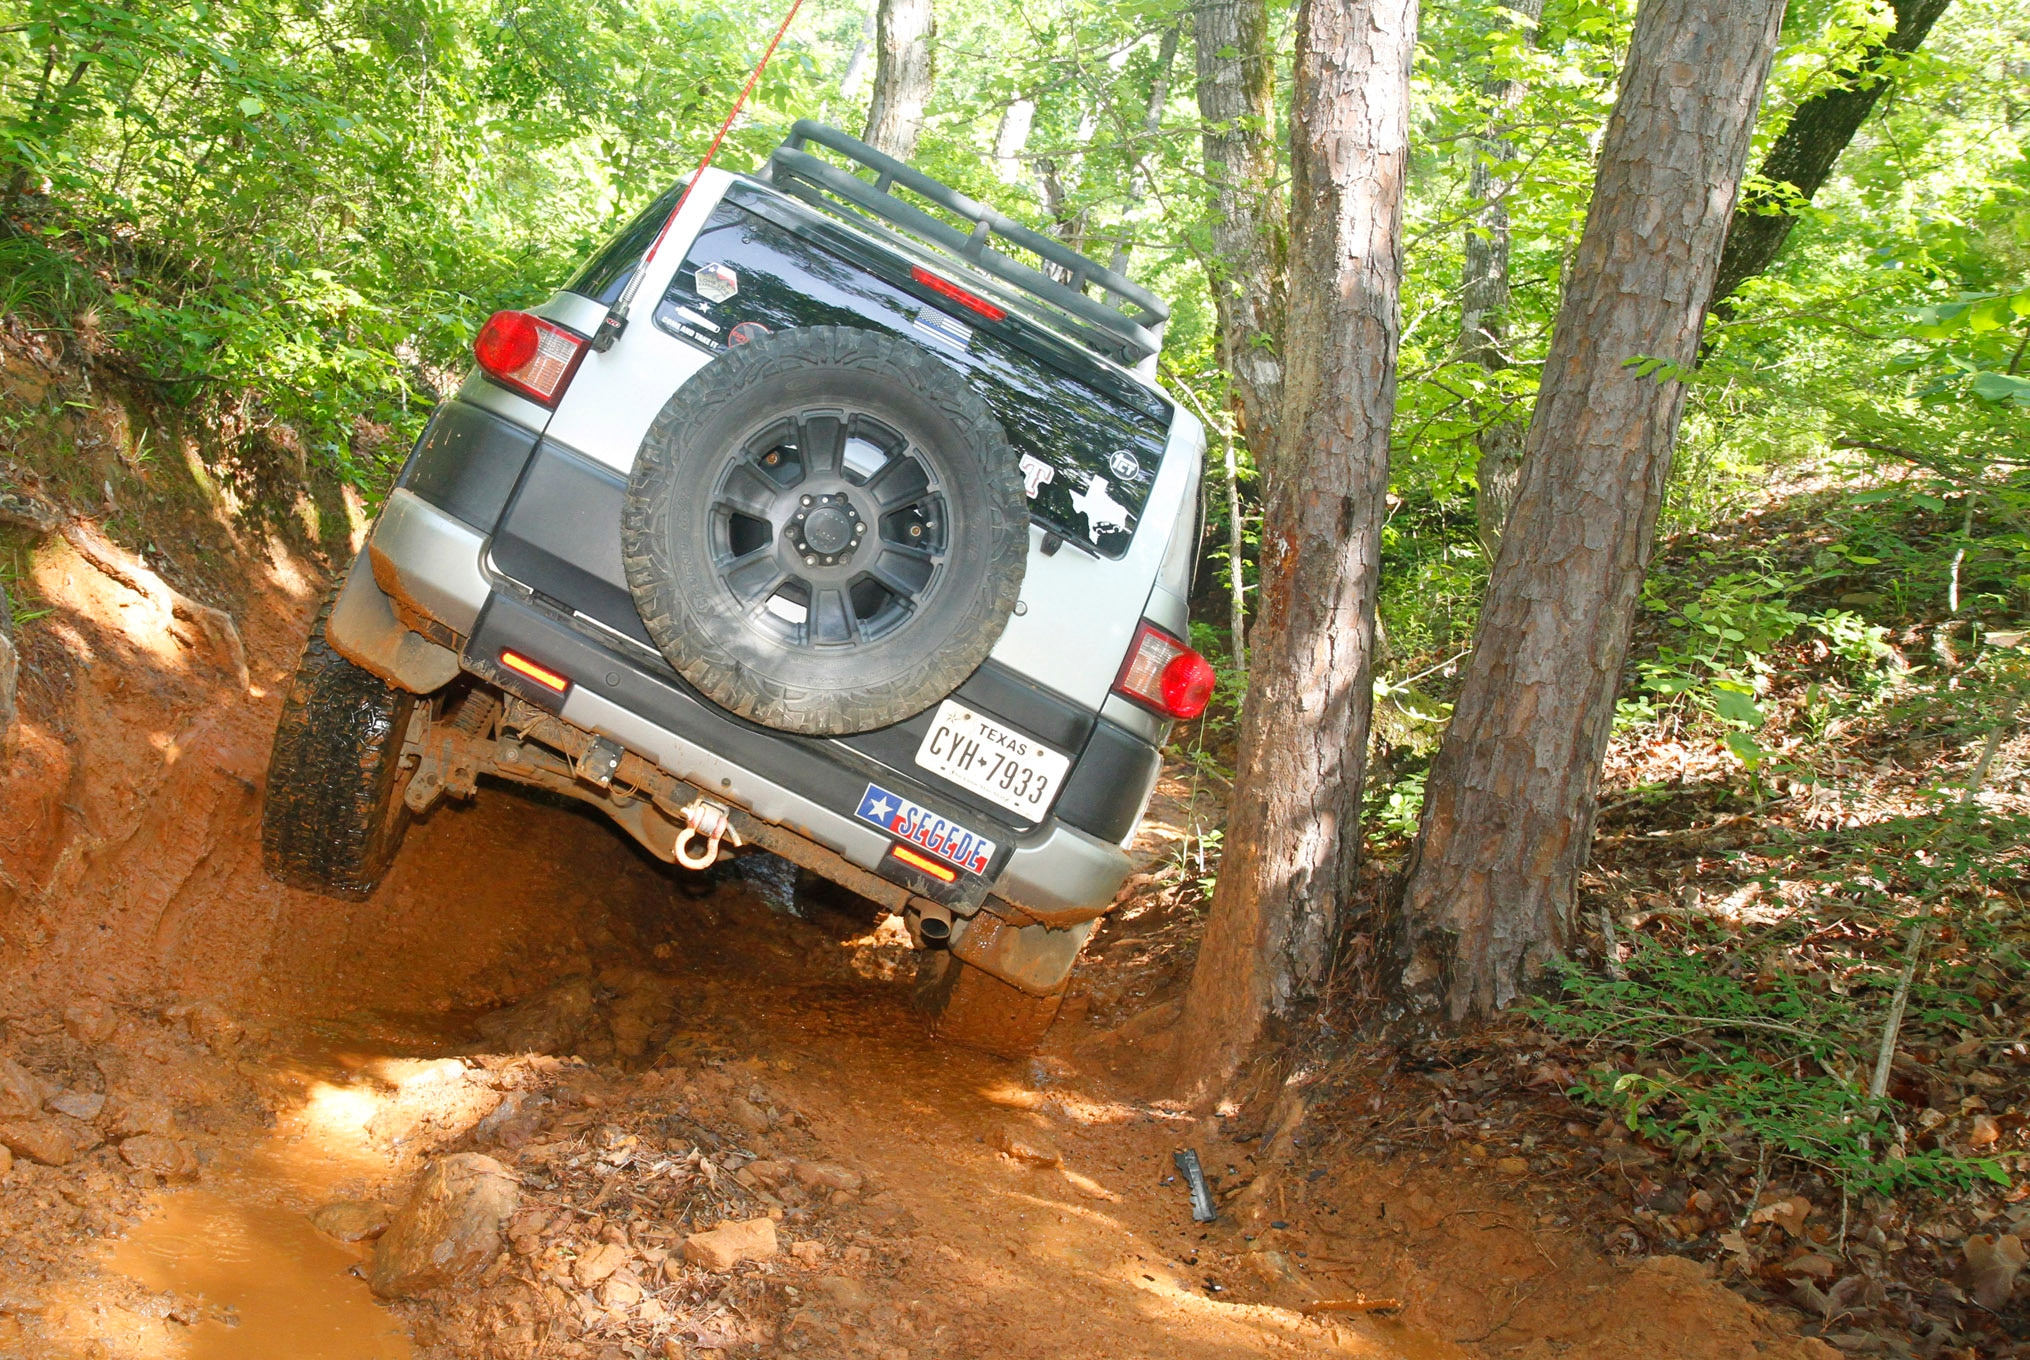 This tight, off-camber squeeze on Spider Ravine caught a few drivers by surprise, tipping most rigs towards a tree. This FJ Cruiser driver slipped through rather quickly, but it cost him a few body dents and broken window glass.